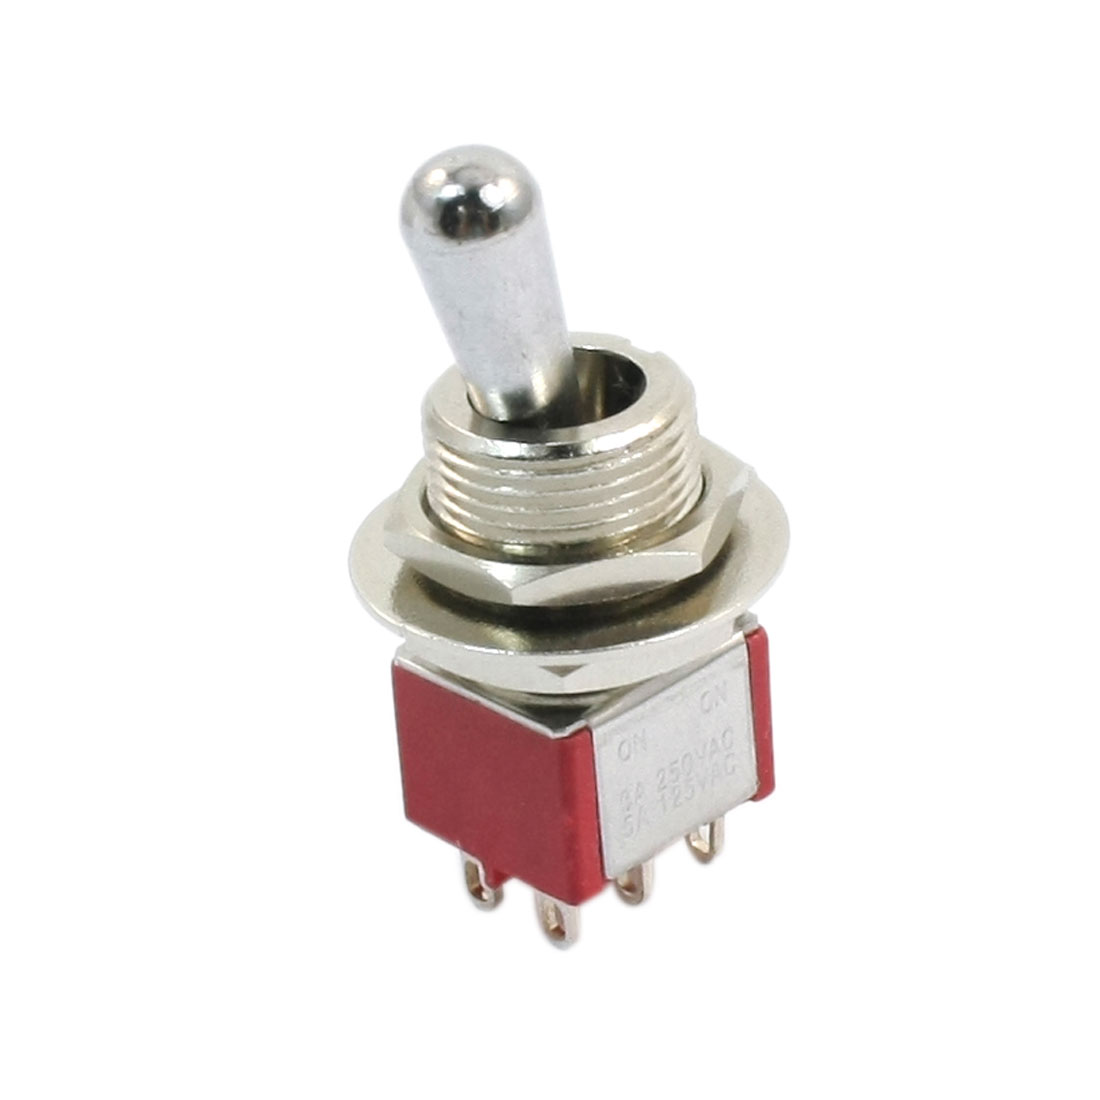 AC 250V 3A 125V 5A 2P2T 2 Positions 6 Pin Terminals Rocker Toggle Switch